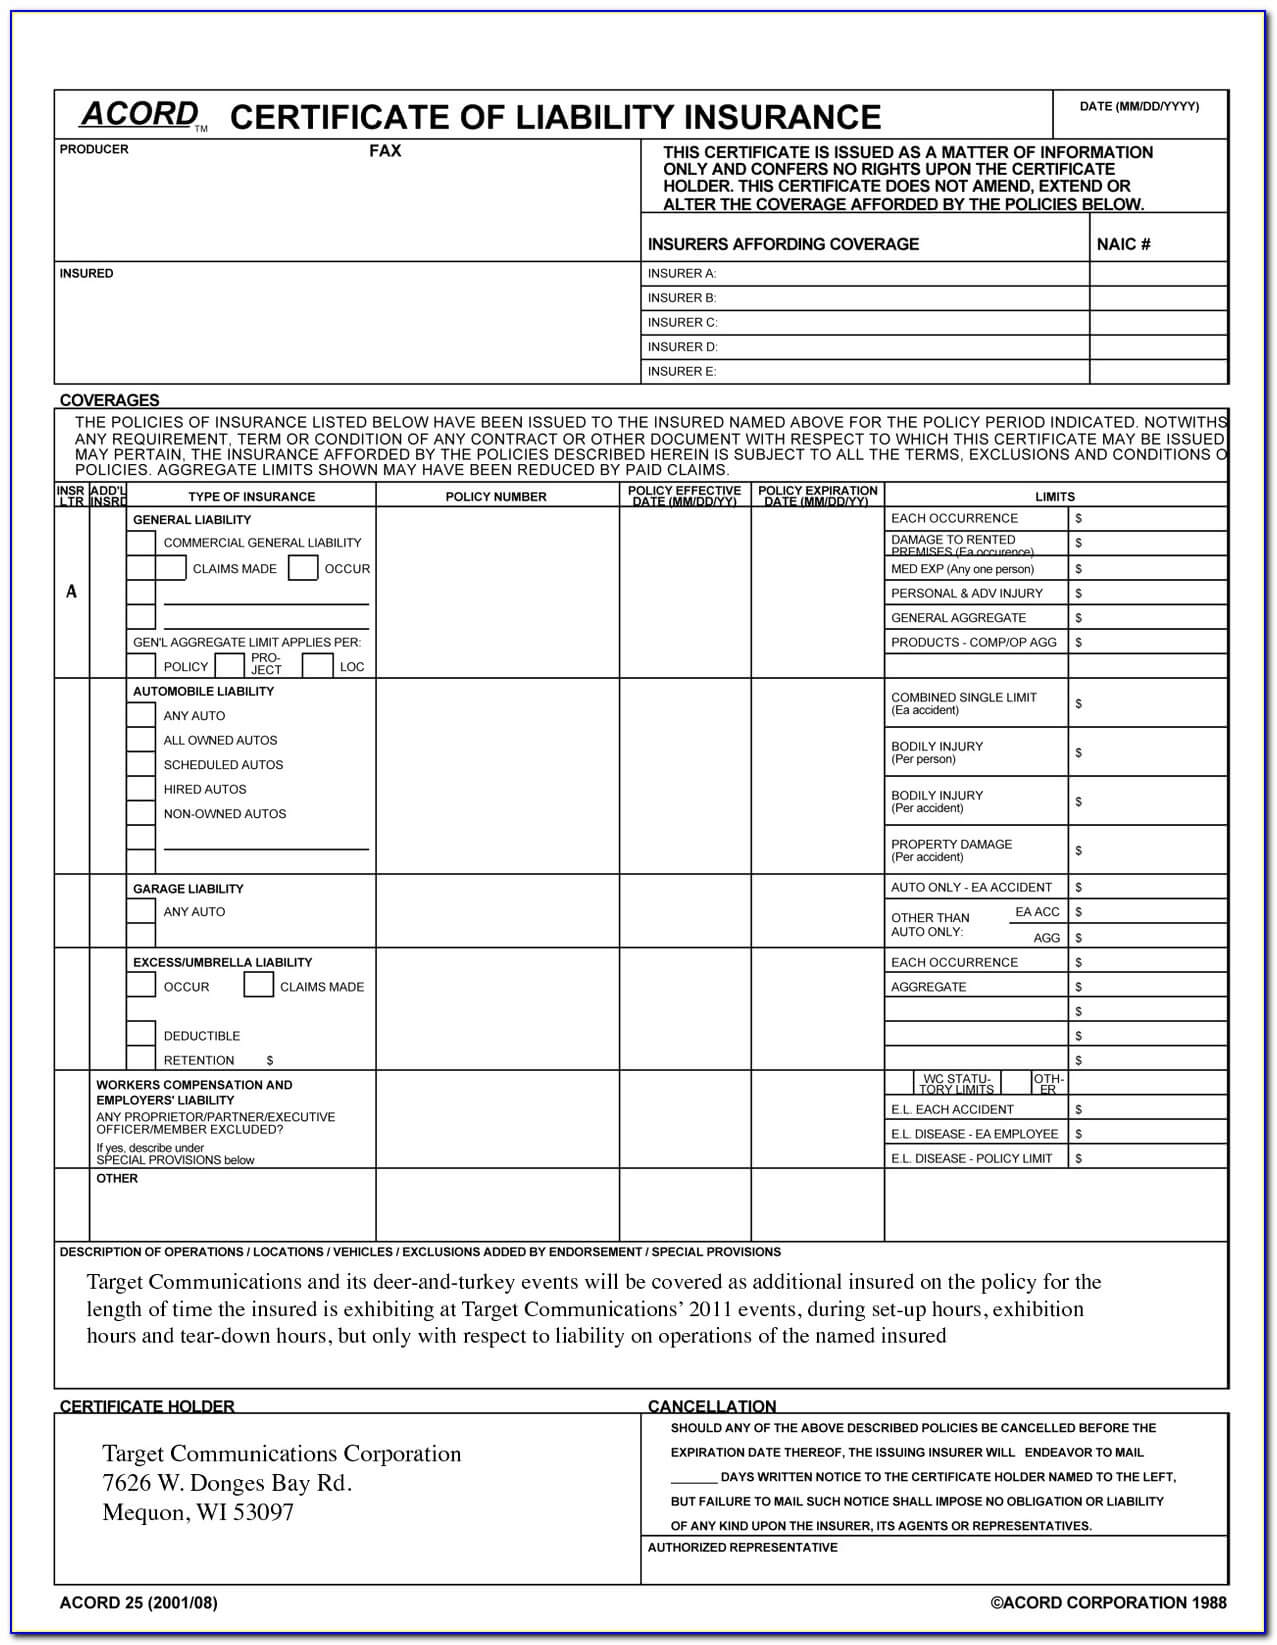 Acord Certificate Of Liability Insurance Template Top With Certificate Of Insurance Template